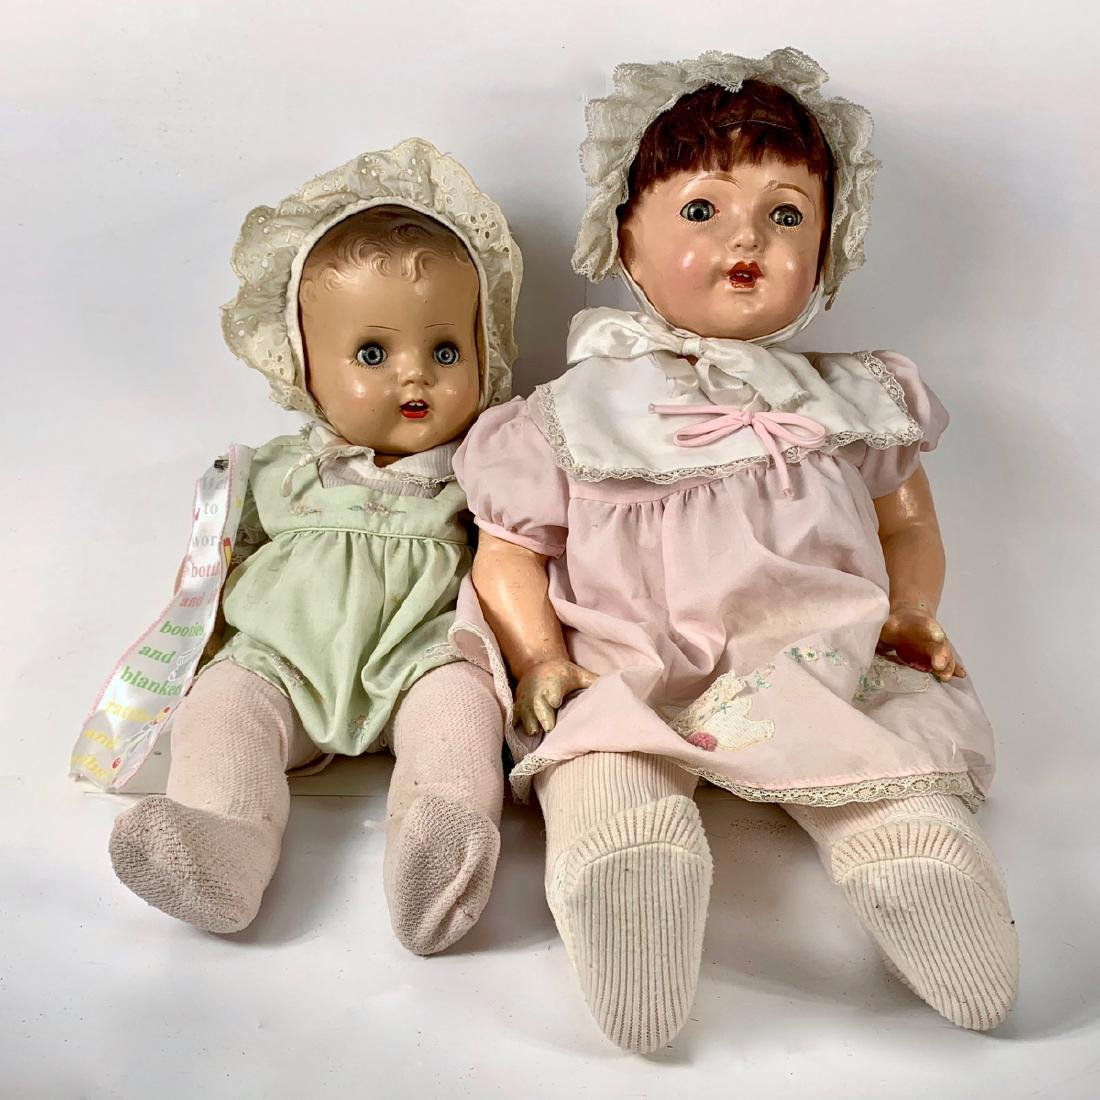 C. 1930's Pair of Vintage Composition Dolls